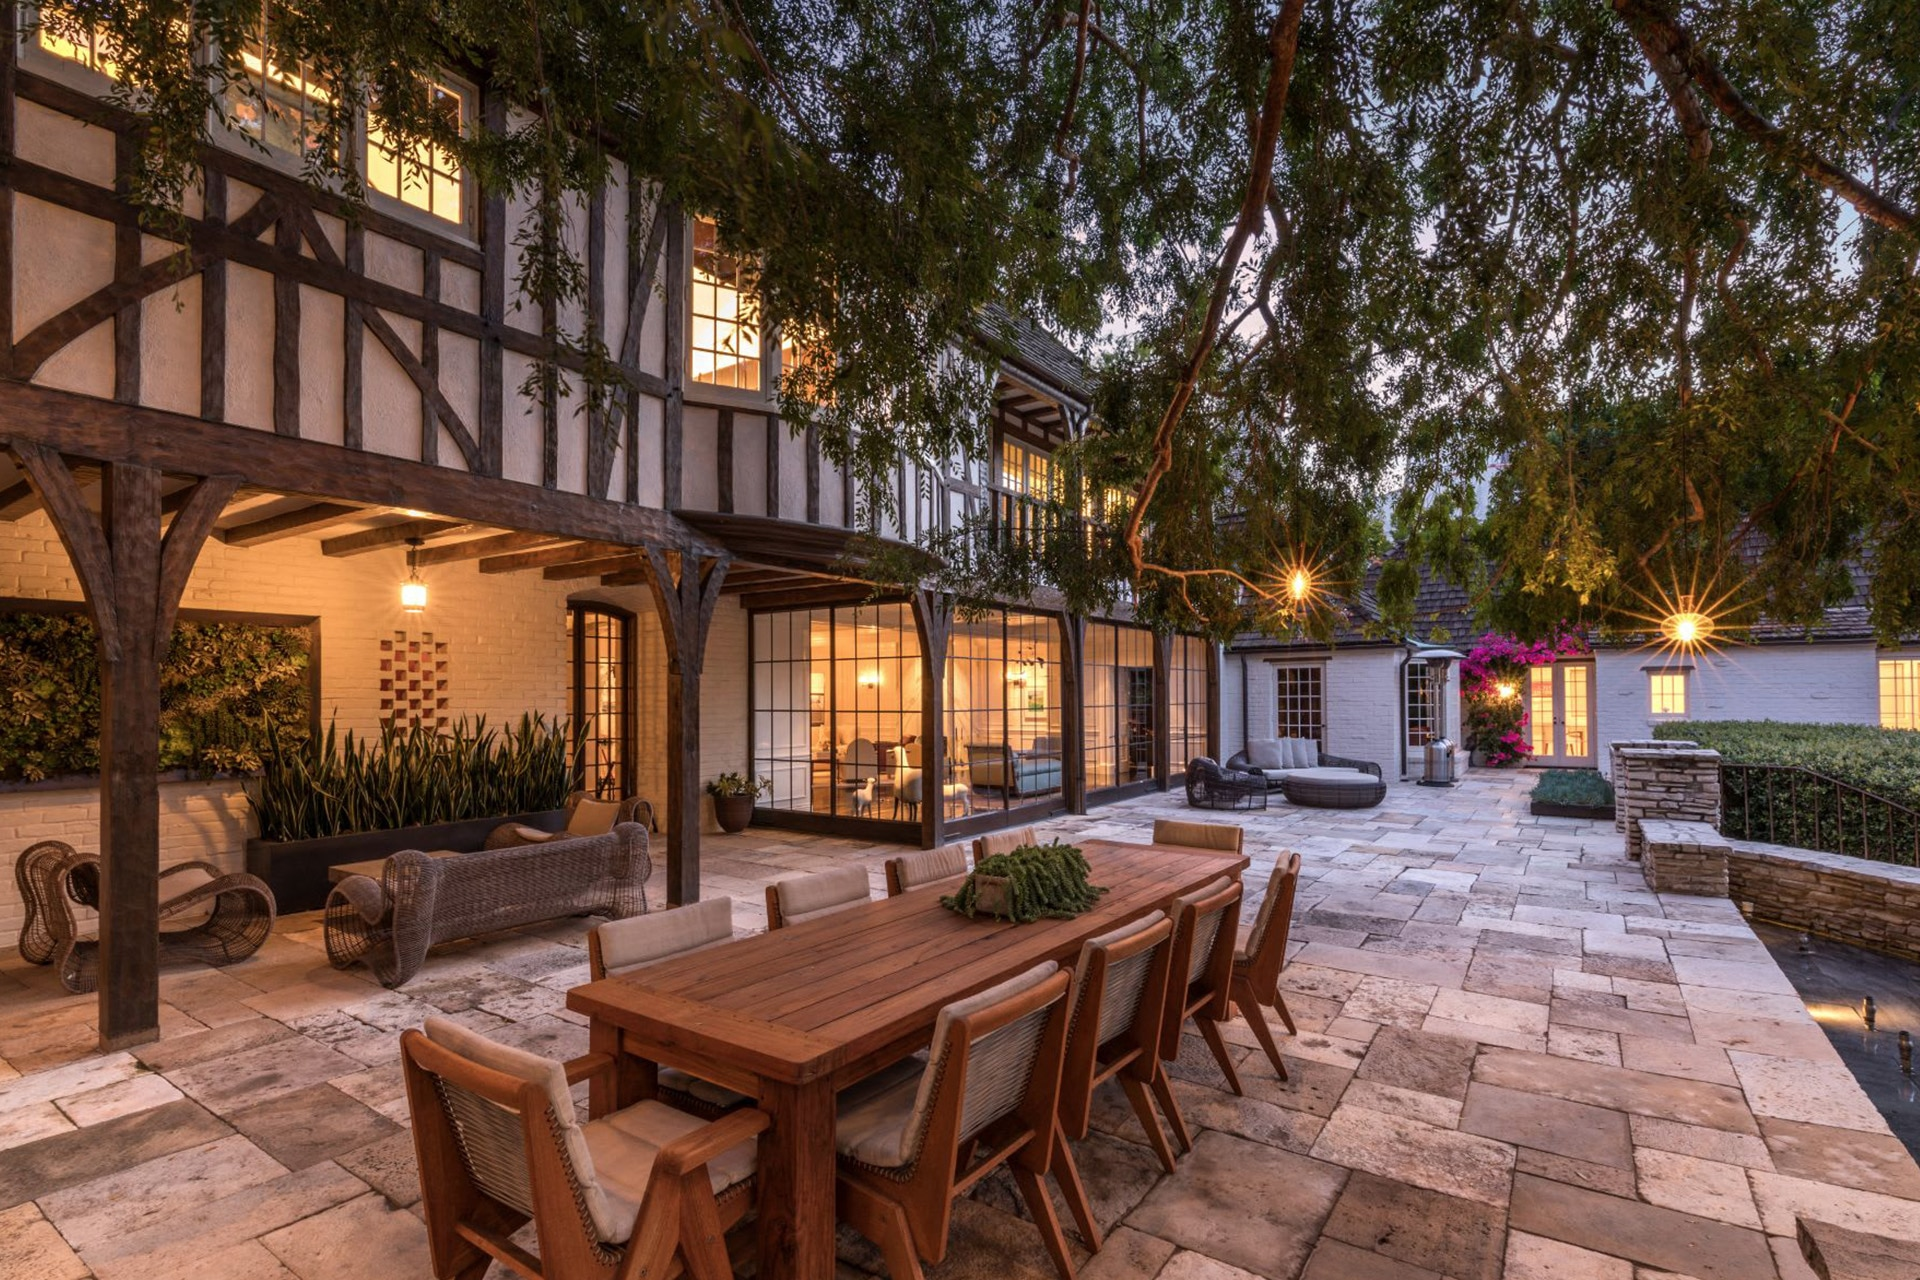 Take A Tour Of The $70 Million Mansion Once Owned By Brad Pitt And Jennifer Aniston